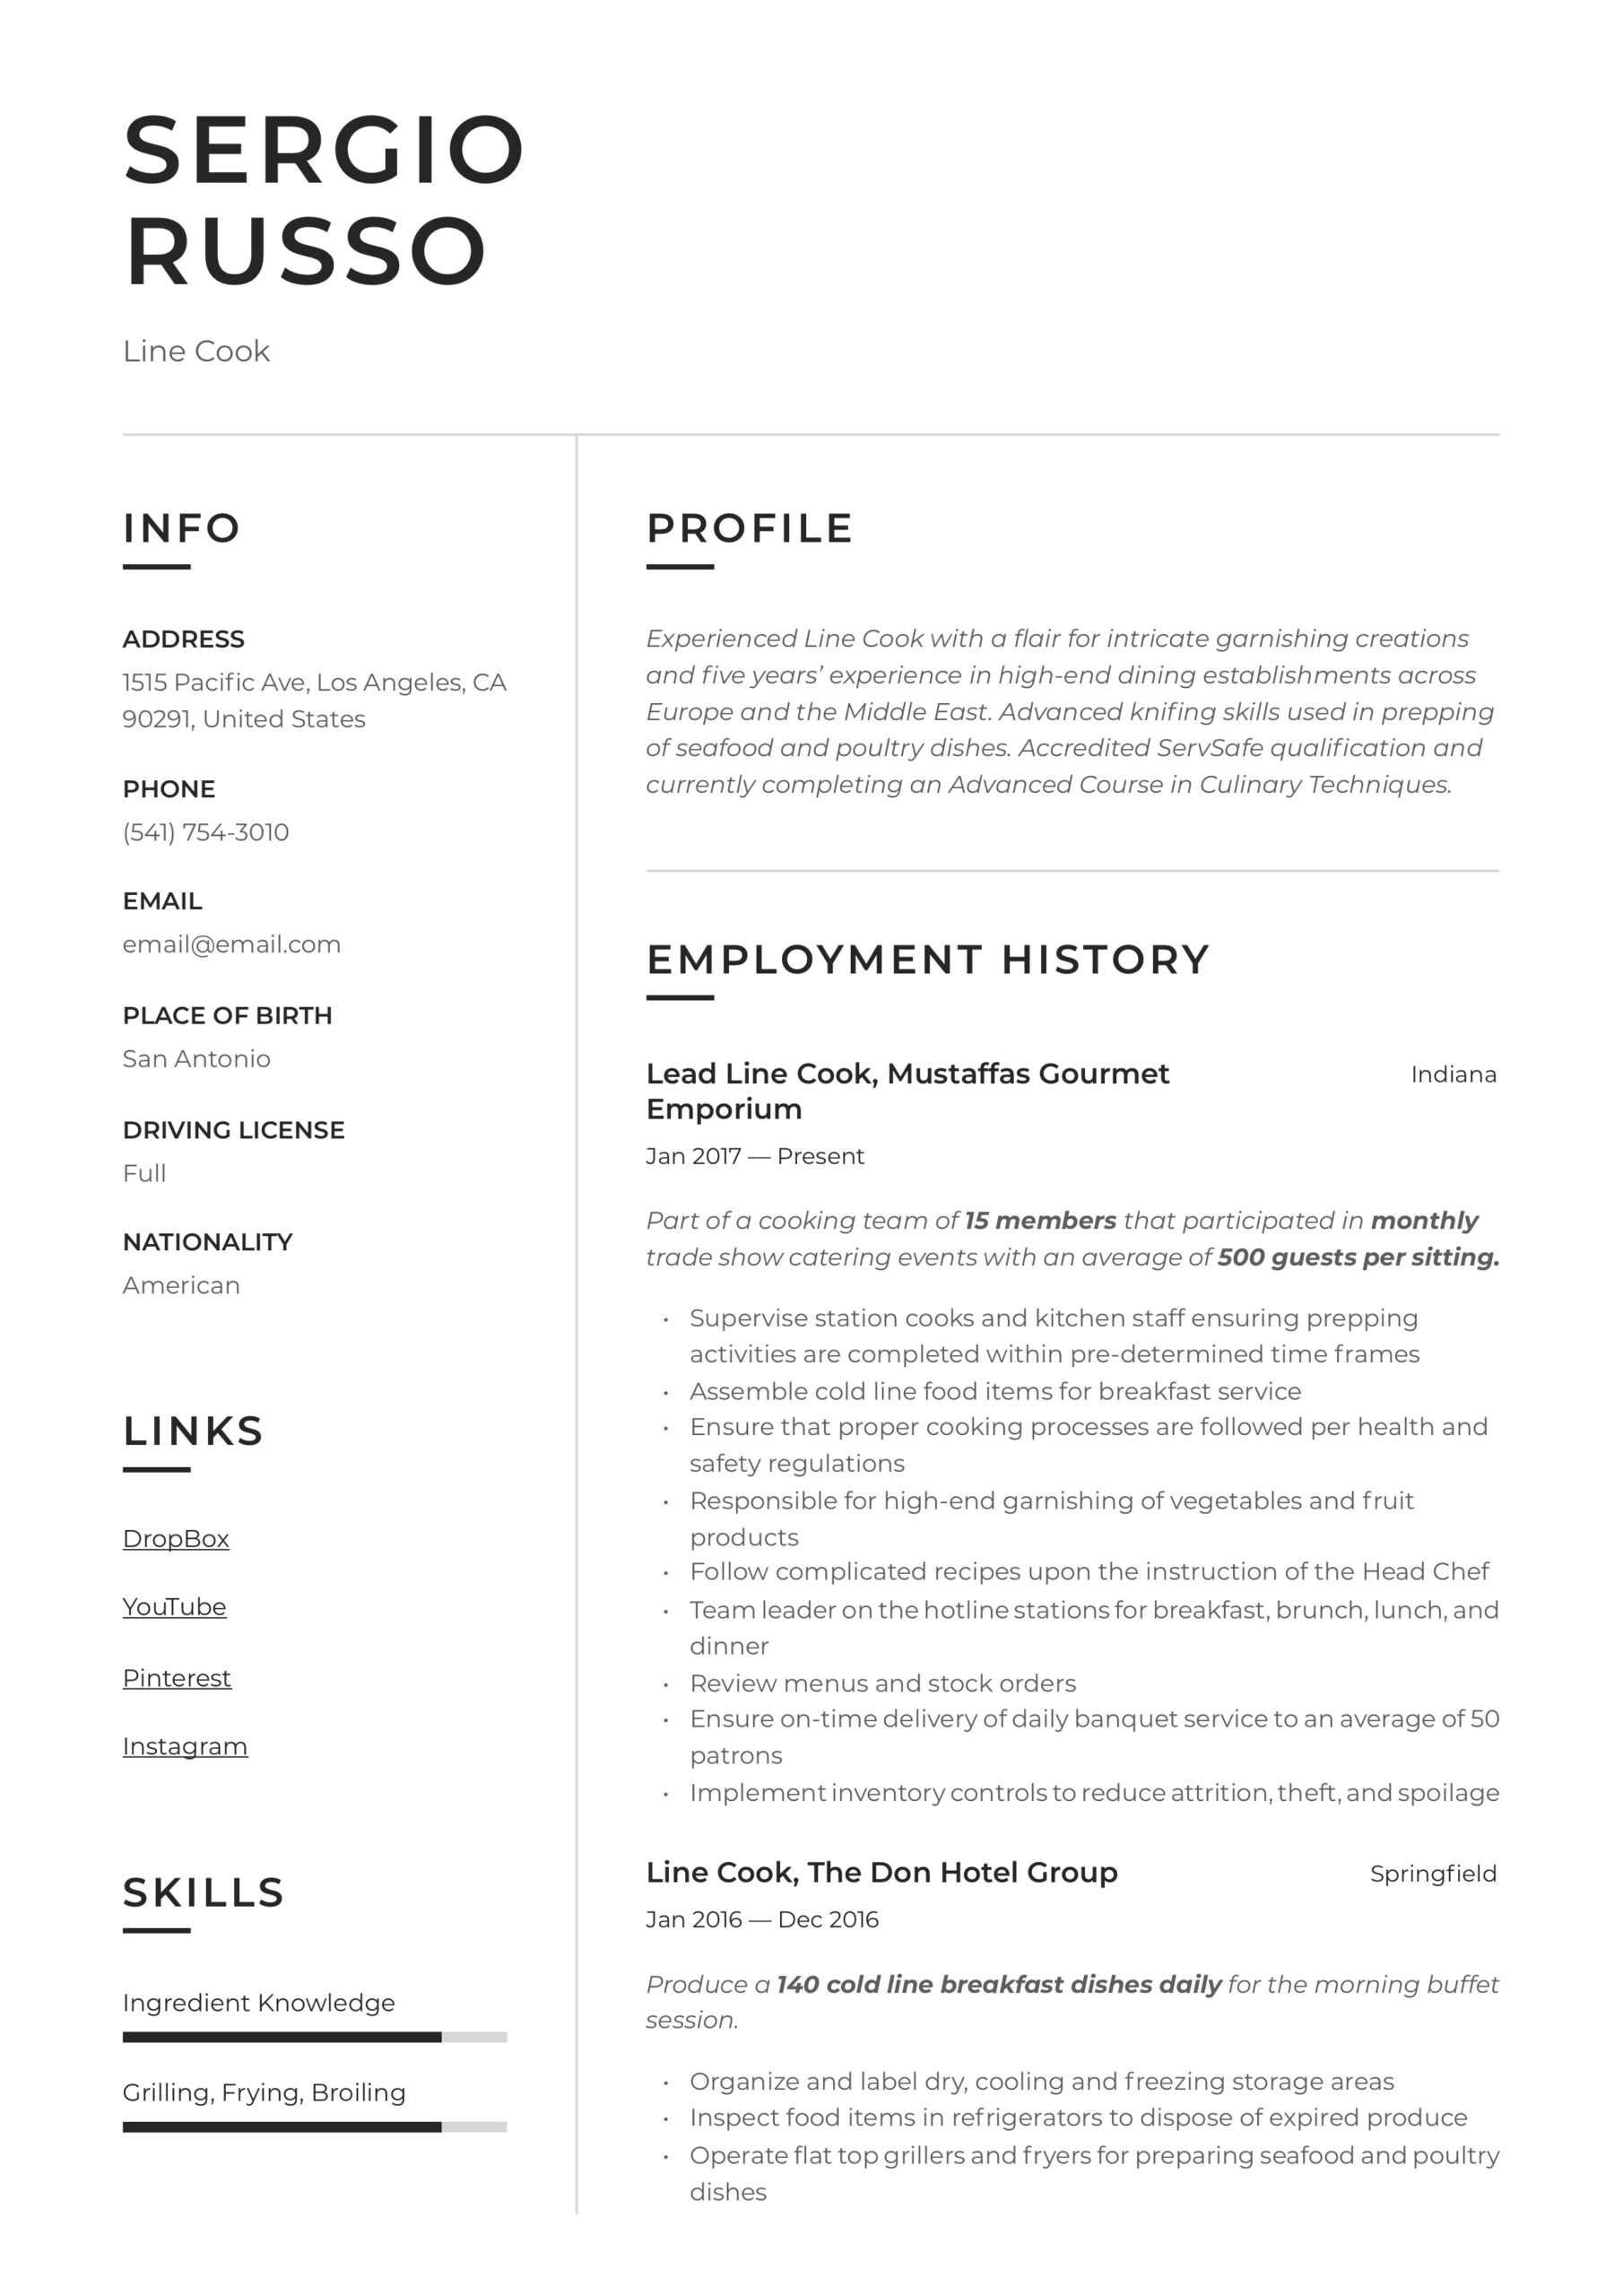 line resume writing guide examples job description for umn cse standard functional Resume Line Cook Job Description For Resume